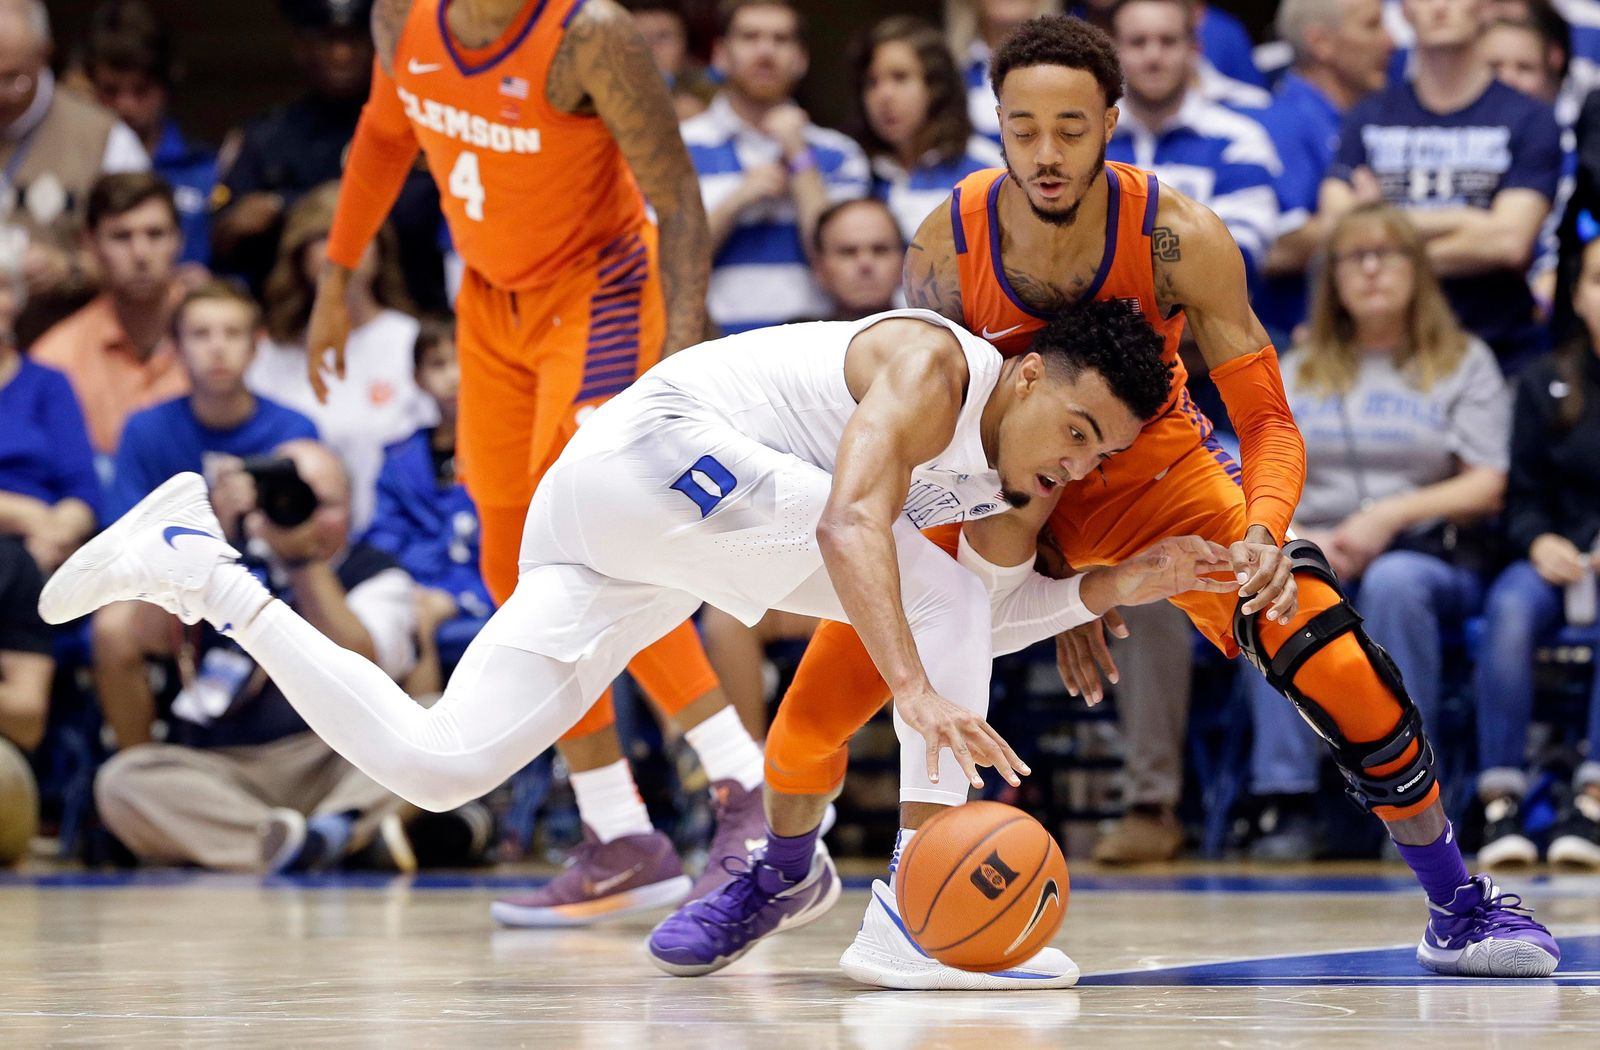 Duke's Tre Jones dribbles the ball while Clemson's Marcquise Reed defends during the first half of an NCAA college basketball game in Durham, N.C., Saturday, Jan. 5, 2019. (AP Photo/Gerry Broome)